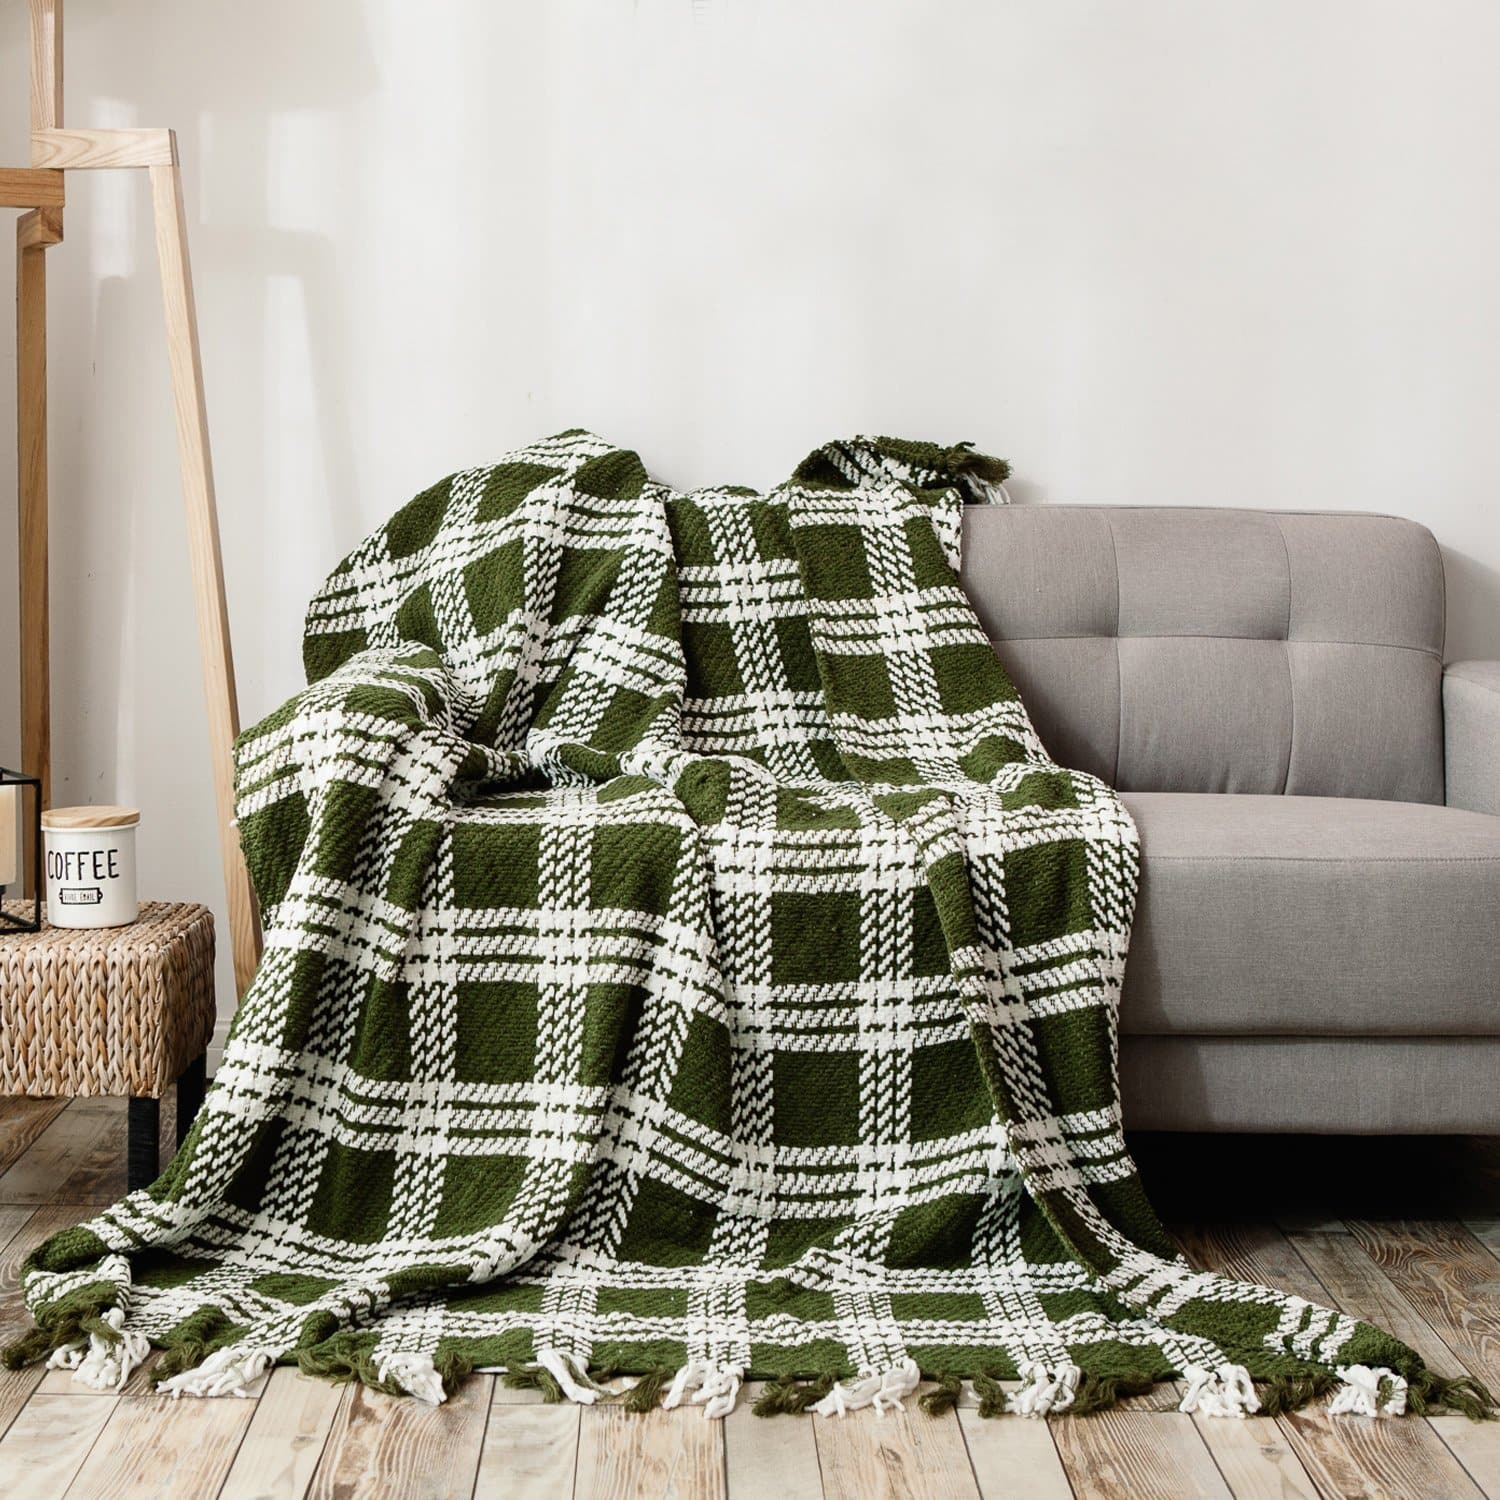 Soft Microfiber All Season Blanket with Tassels, Ideal for Bed or Couch $14.4